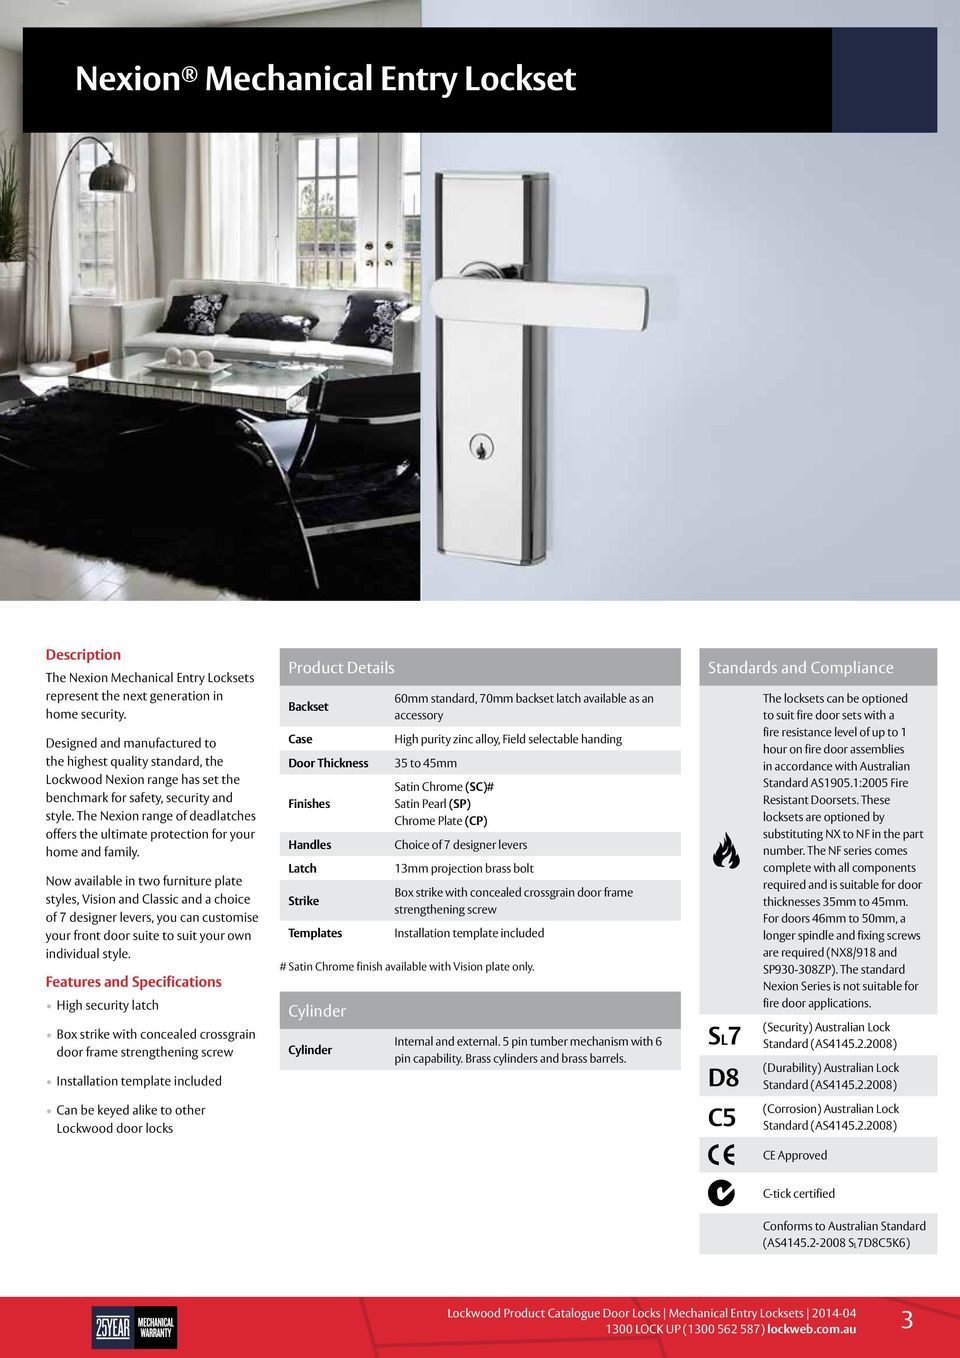 The Nexion range of deadlatches offers the ultimate protection for your home and family.